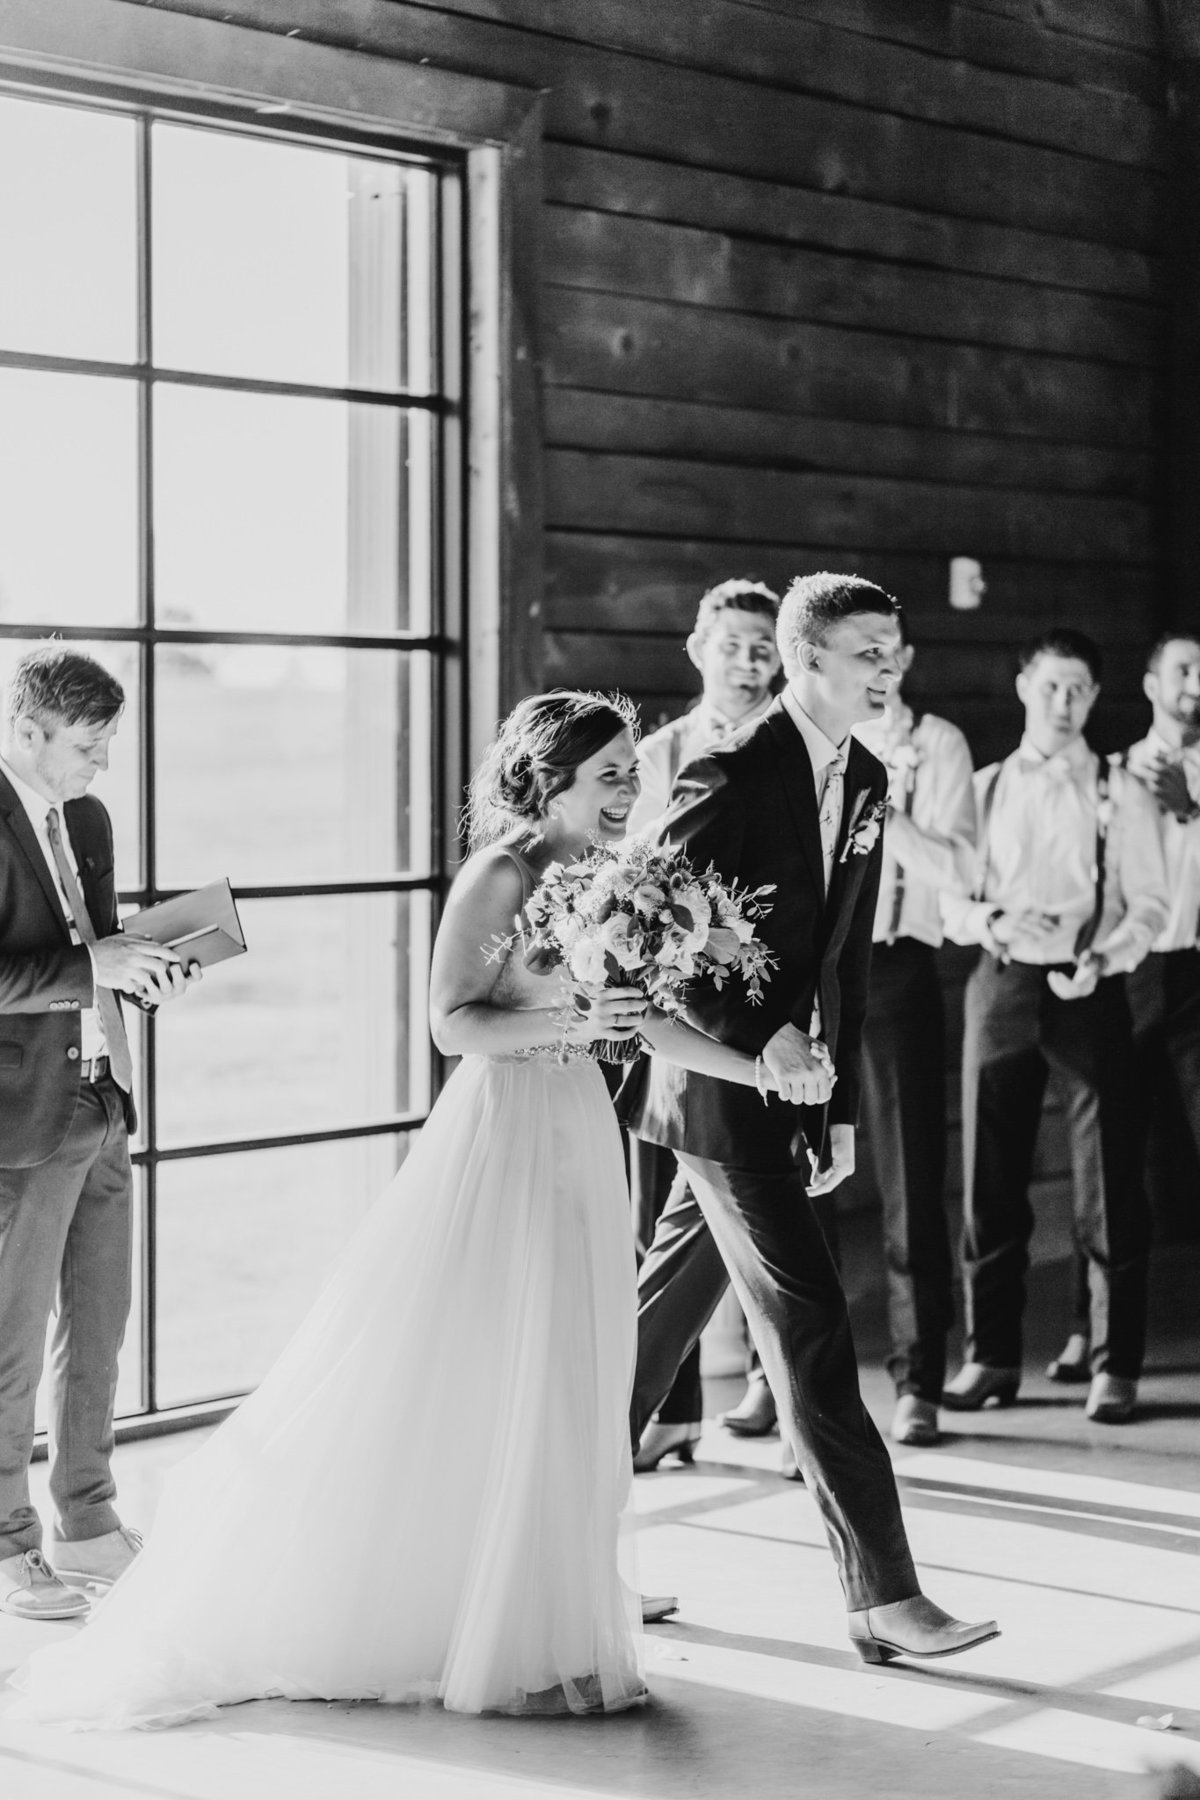 Alexa-Vossler-Photo_Dallas-Wedding-Photographer_North-Texas-Wedding-Photographer_Stephanie-Chase-Wedding-at-Morgan-Creek-Barn-Aubrey-Texas_105